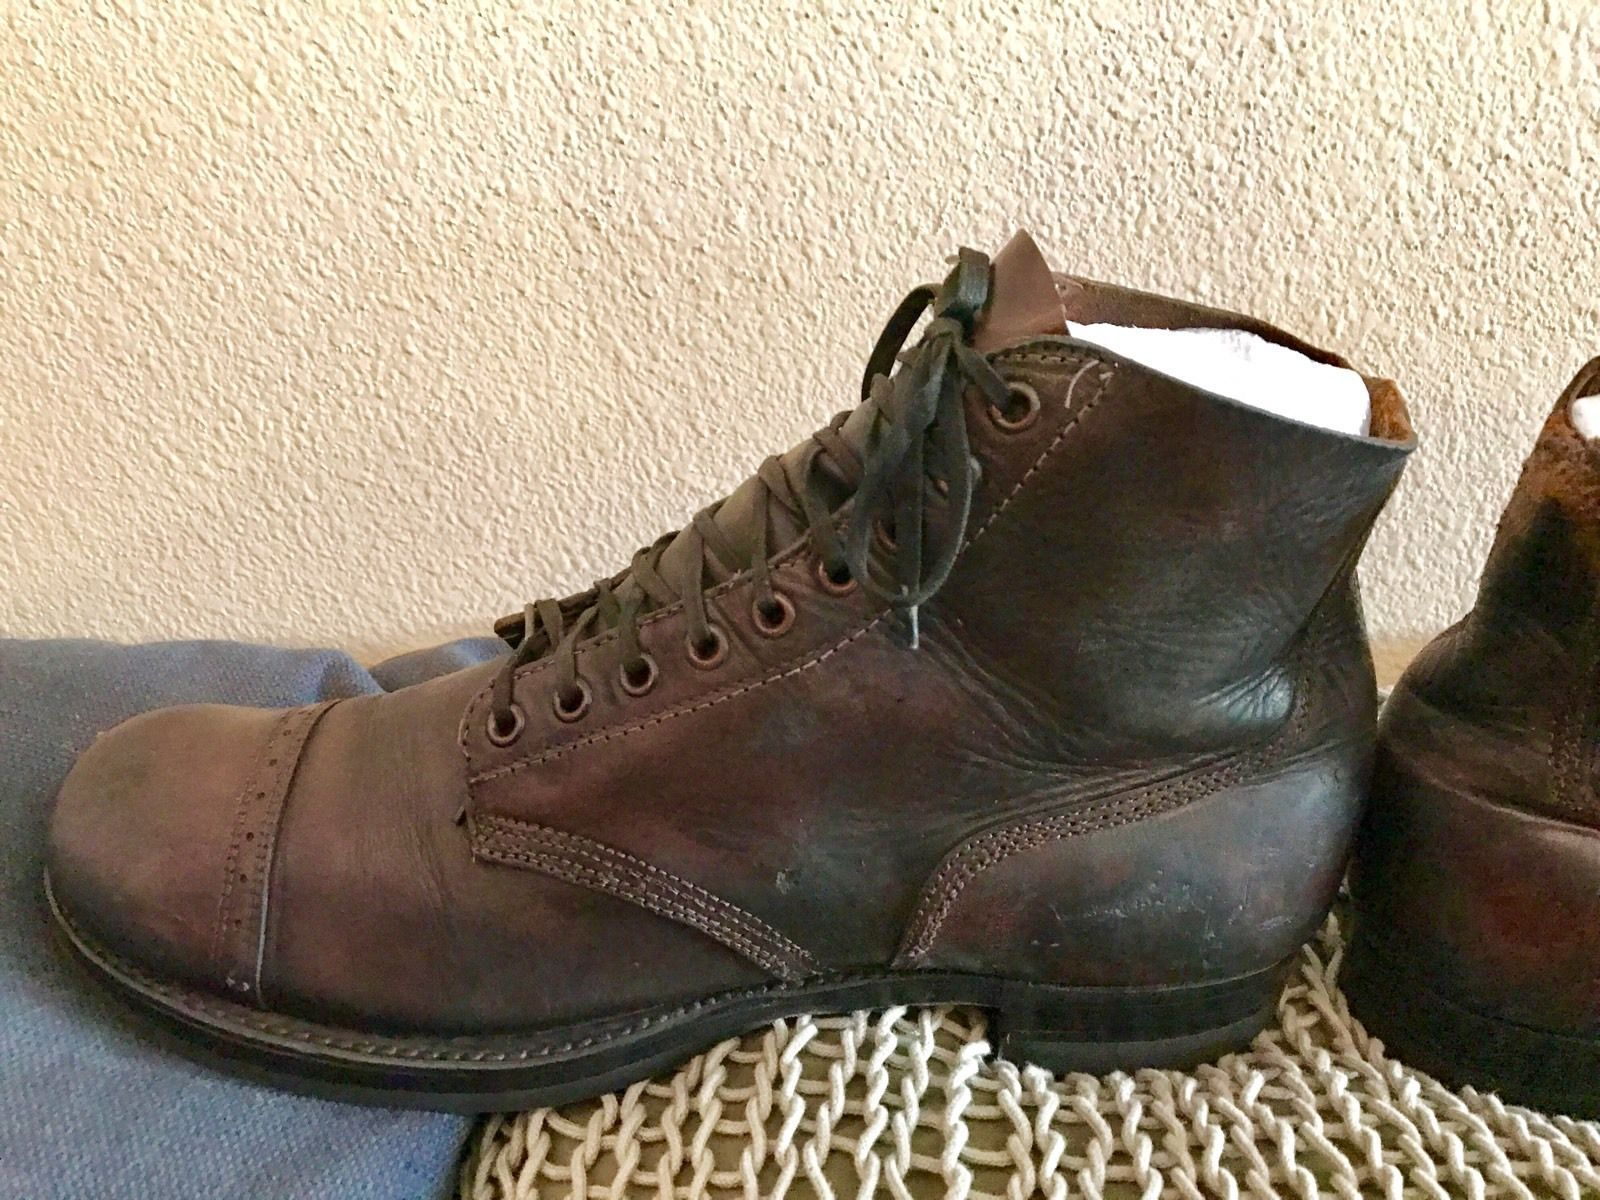 This is a pair of original WWII size 12 russet service boots